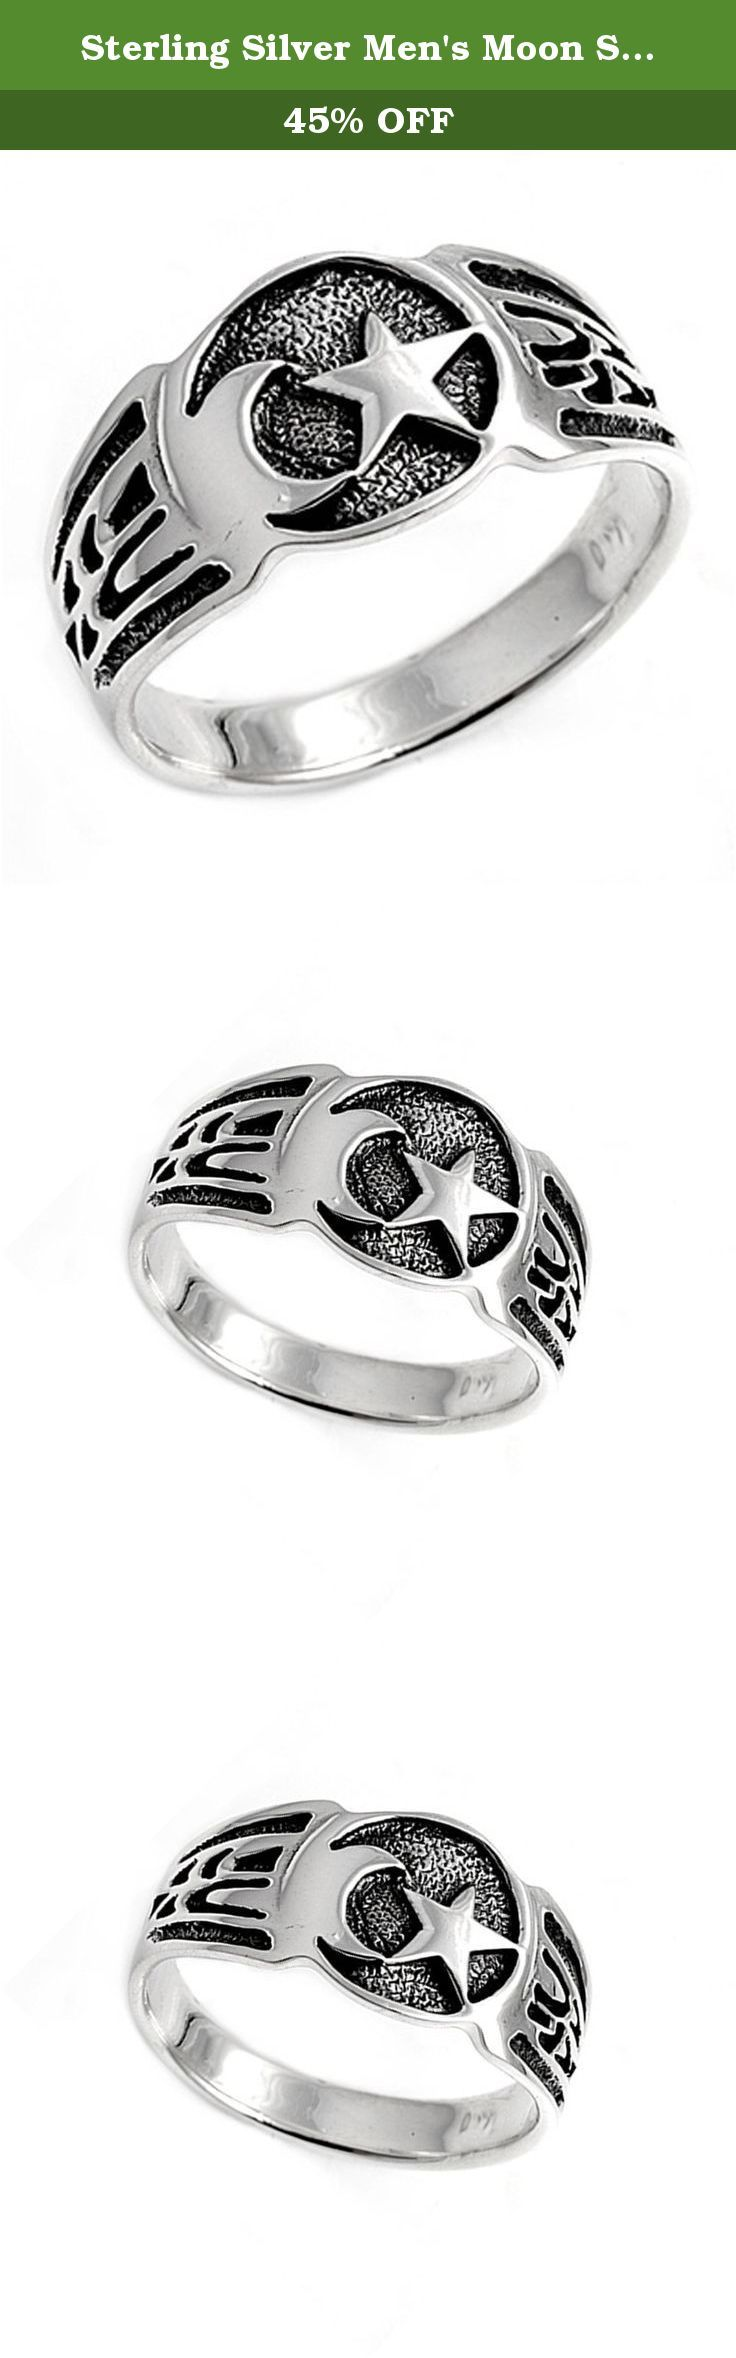 Sterling Silver Men's Moon Star Tribal Ring Vintage 925 Band 12mm Size 15 (RNG21011-15). All our silver jewelry is crafted from .925 silver also commonly referred to as sterling silver. Sterling silver is the standard for beautiful high-quality silver jewelry and can not be replicated by lower priced silver plated jewelry. It is 92.5% pure silver, mixed with alloys to add strength and durability to stand the test of time. We promise superior service which includes fast shipping, great...